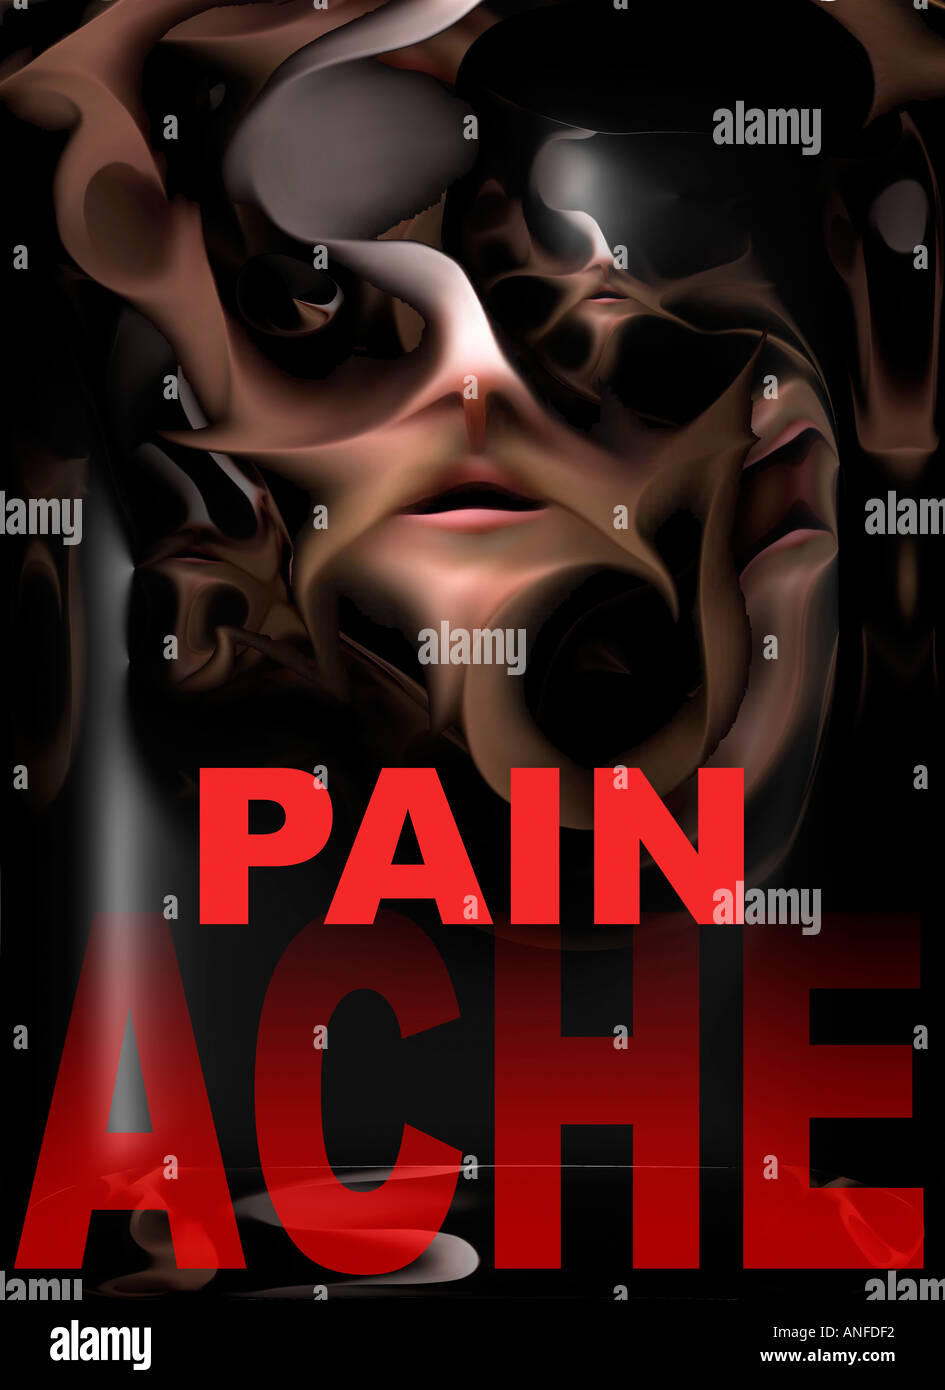 Pain Ache - poster - Stock Image